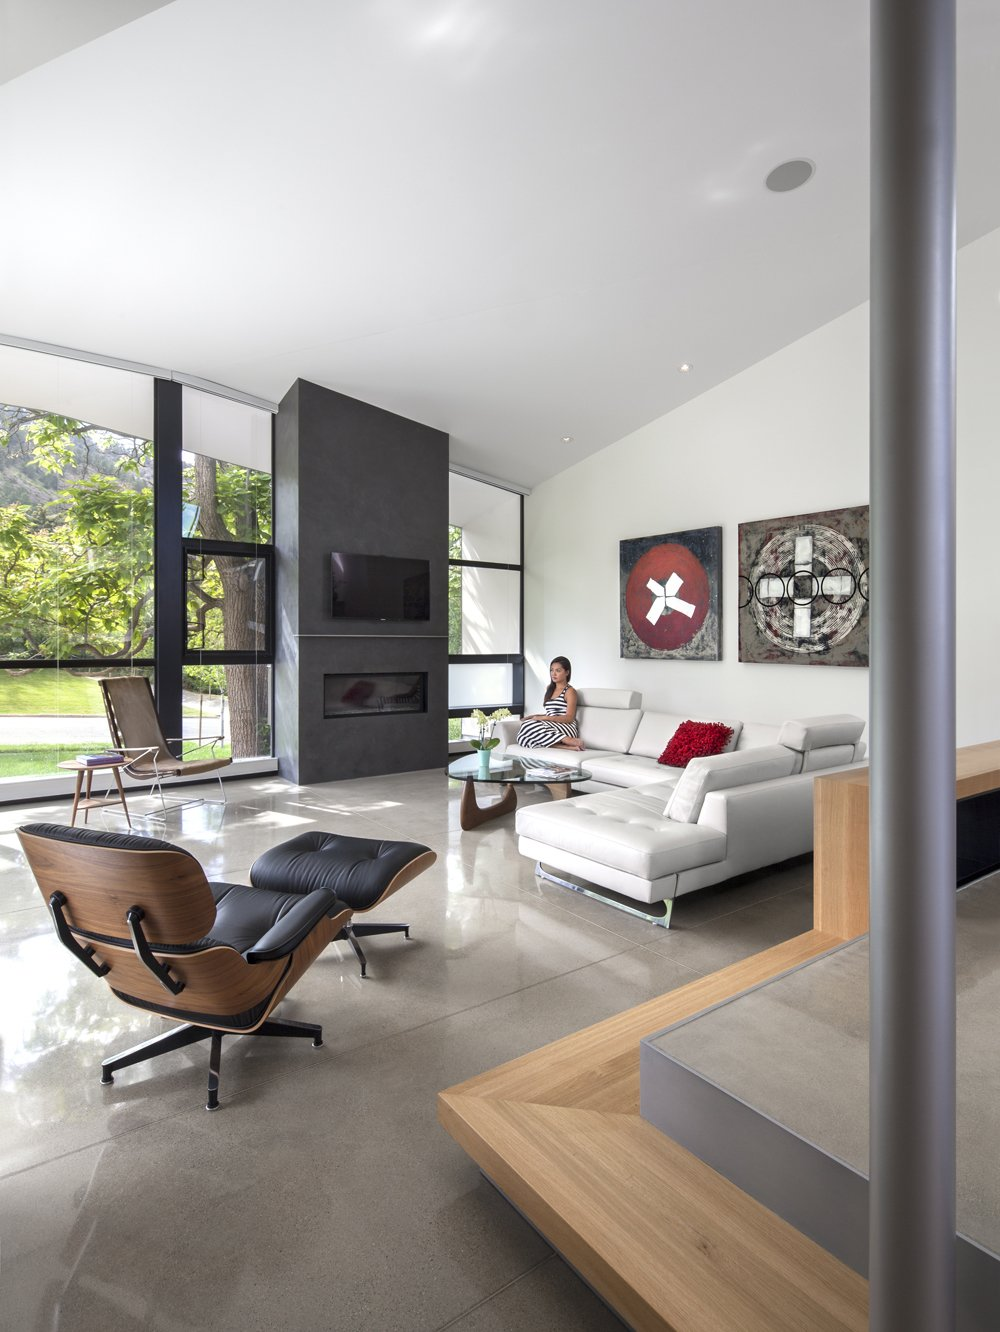 The living room features an Eames lounge chair and ottoman from Design Within Reach and original artwork by Bill Snider